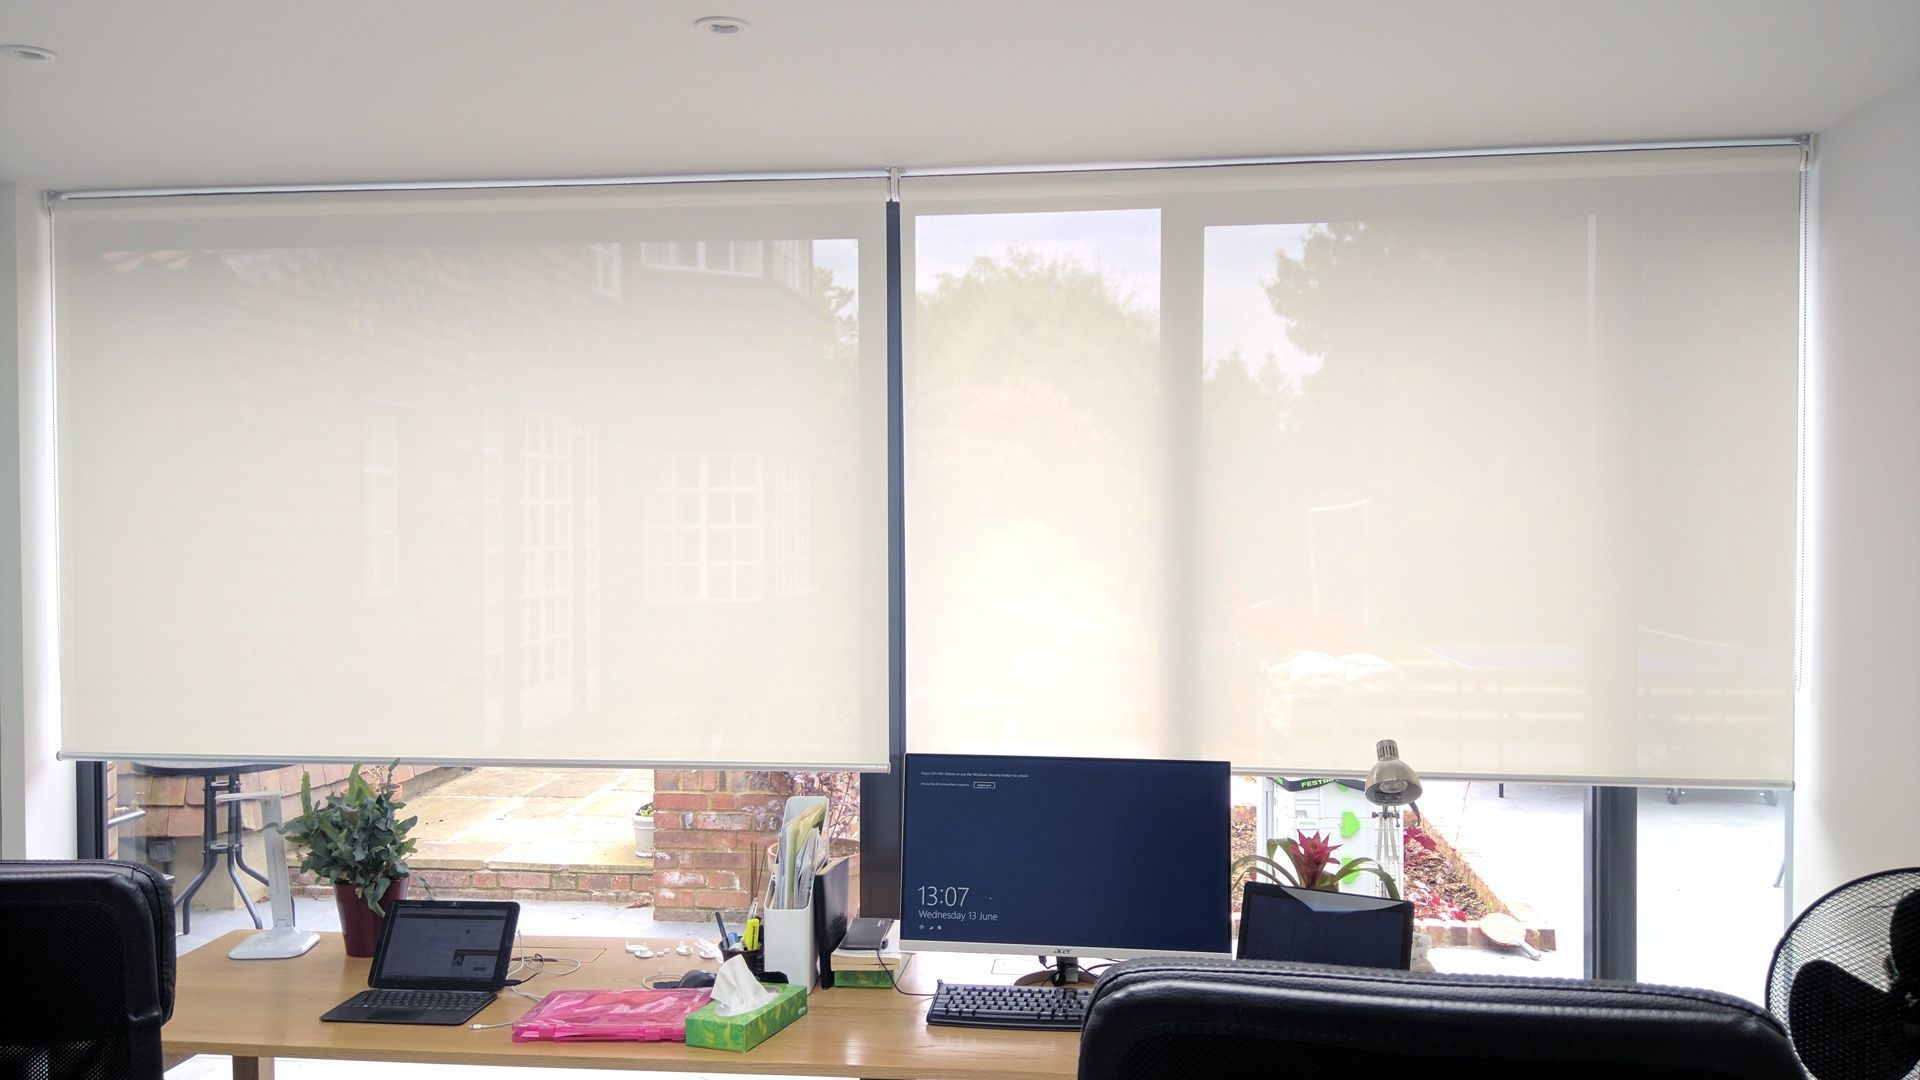 Basics roller blinds fitted in west norwood london for large sliding